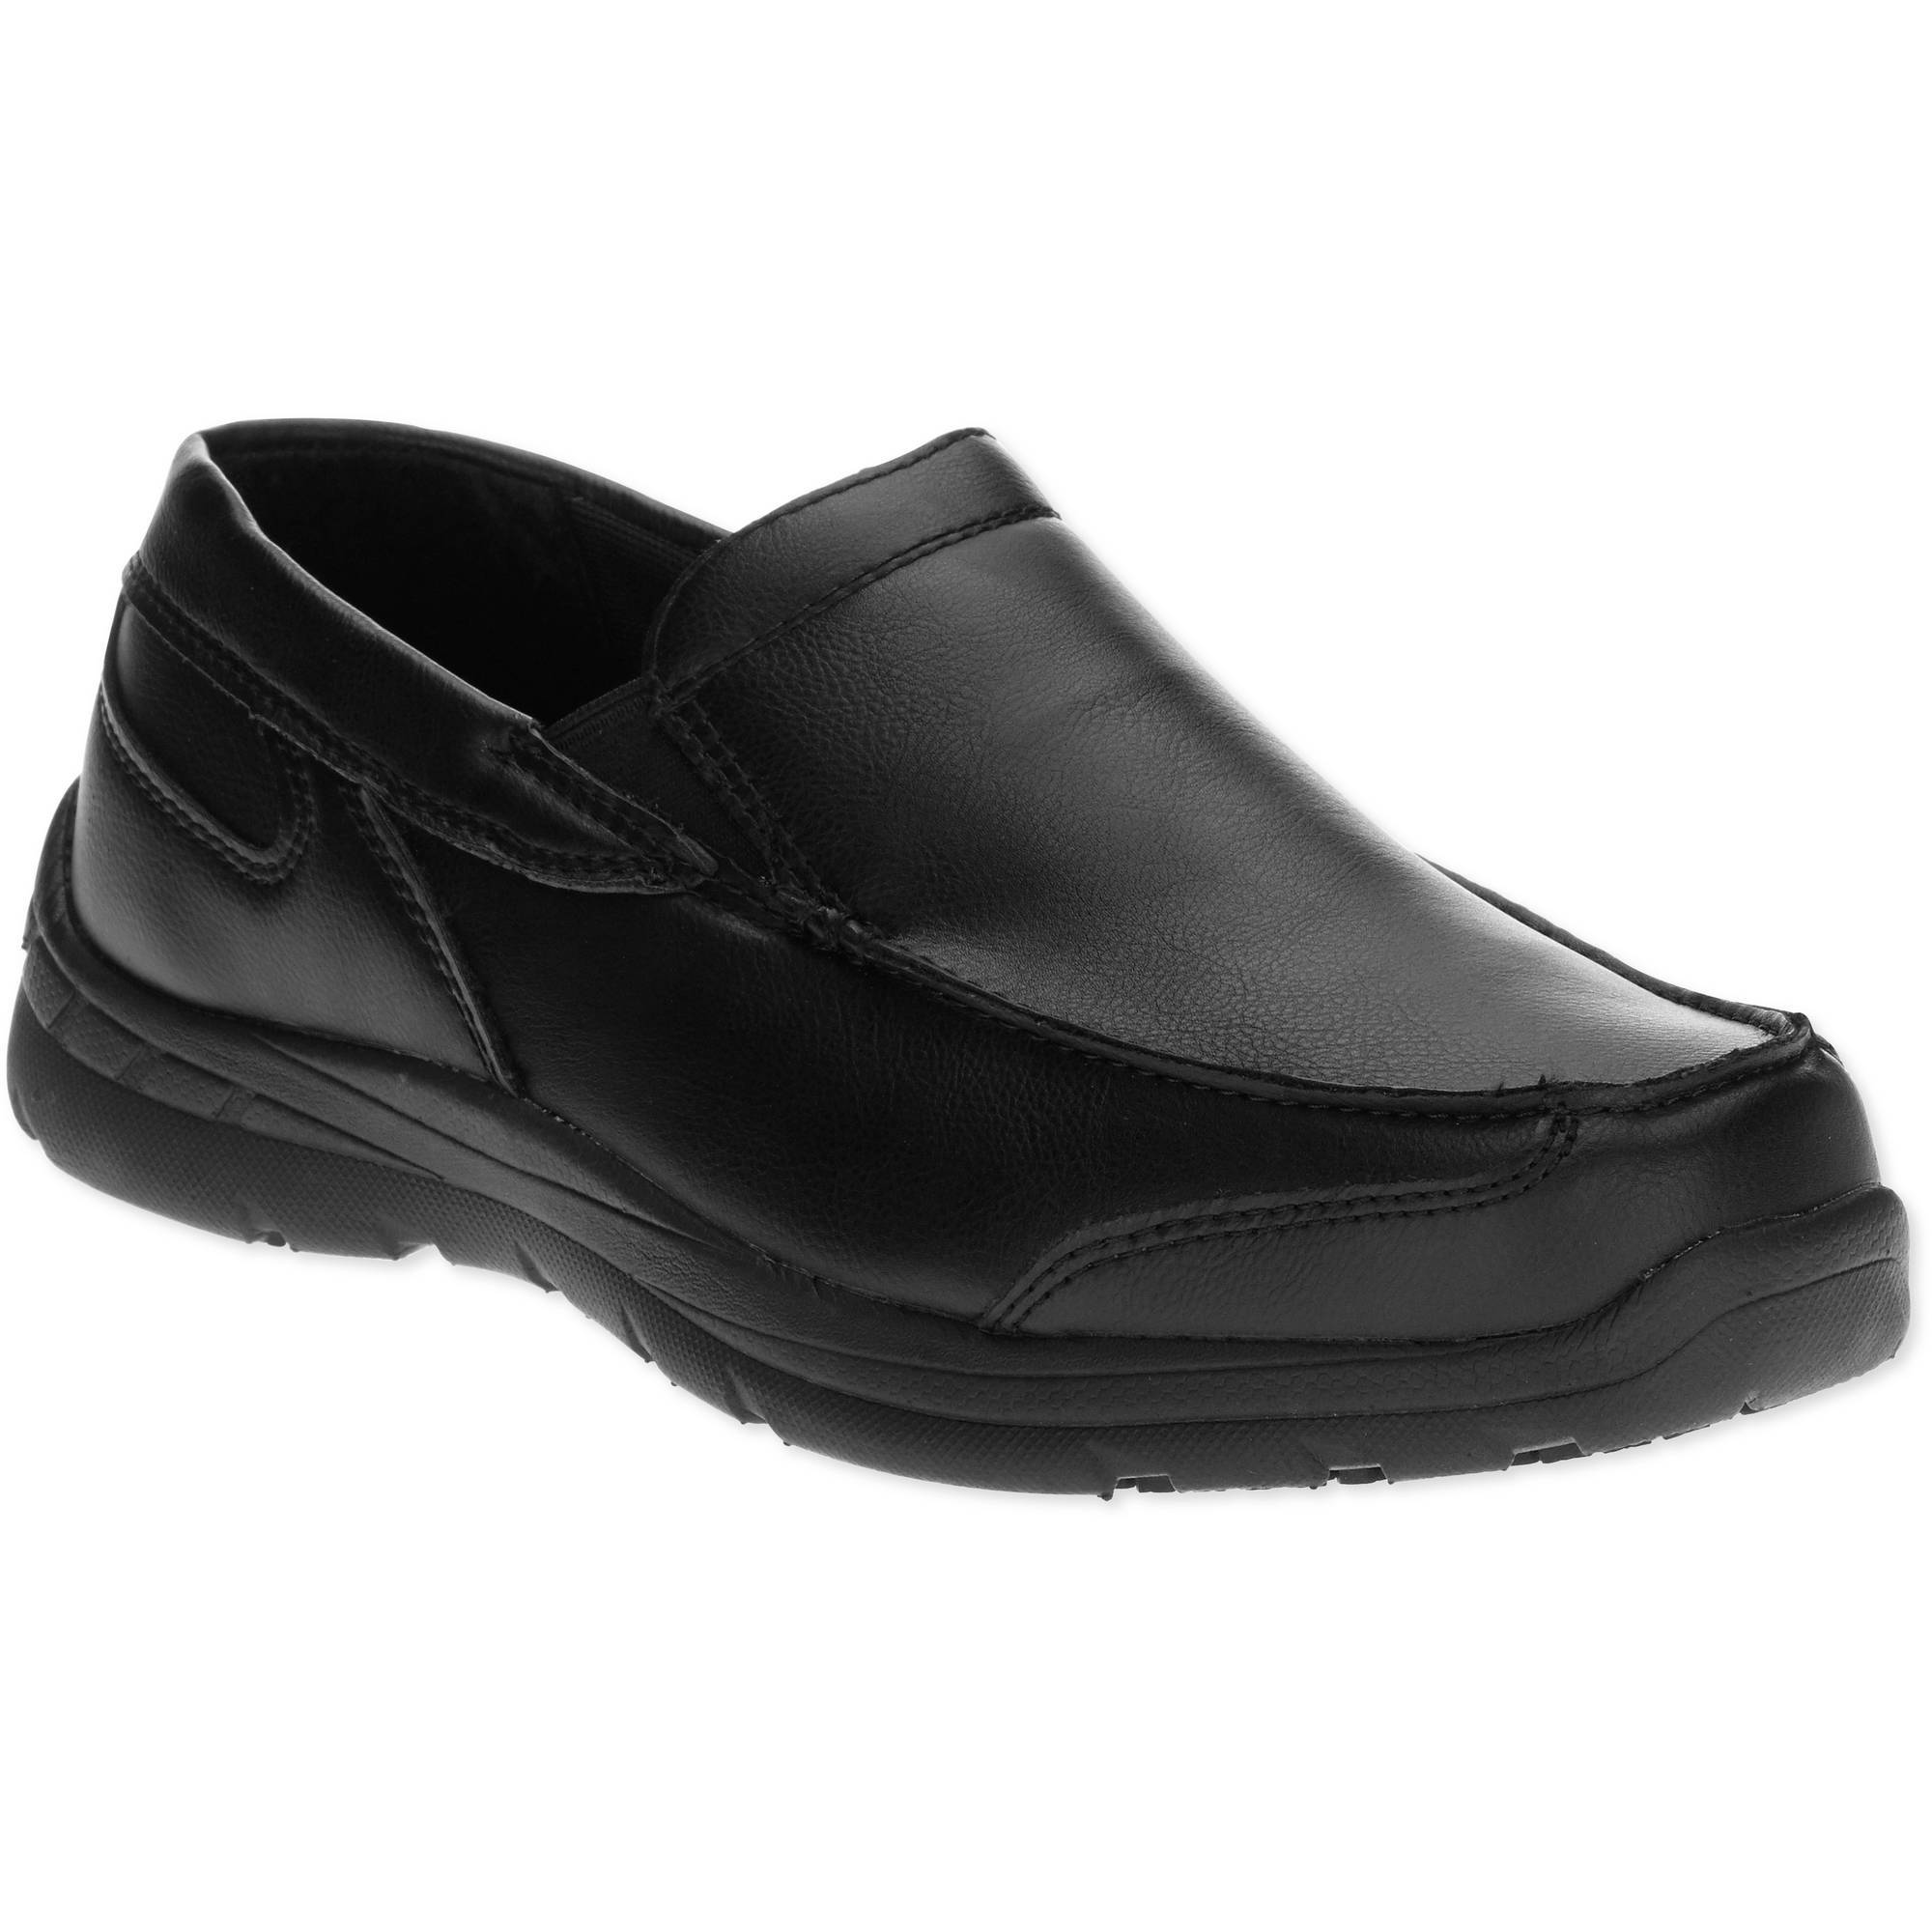 Tredsafe Men's Manon Slip-Resistant Step-In Shoe by